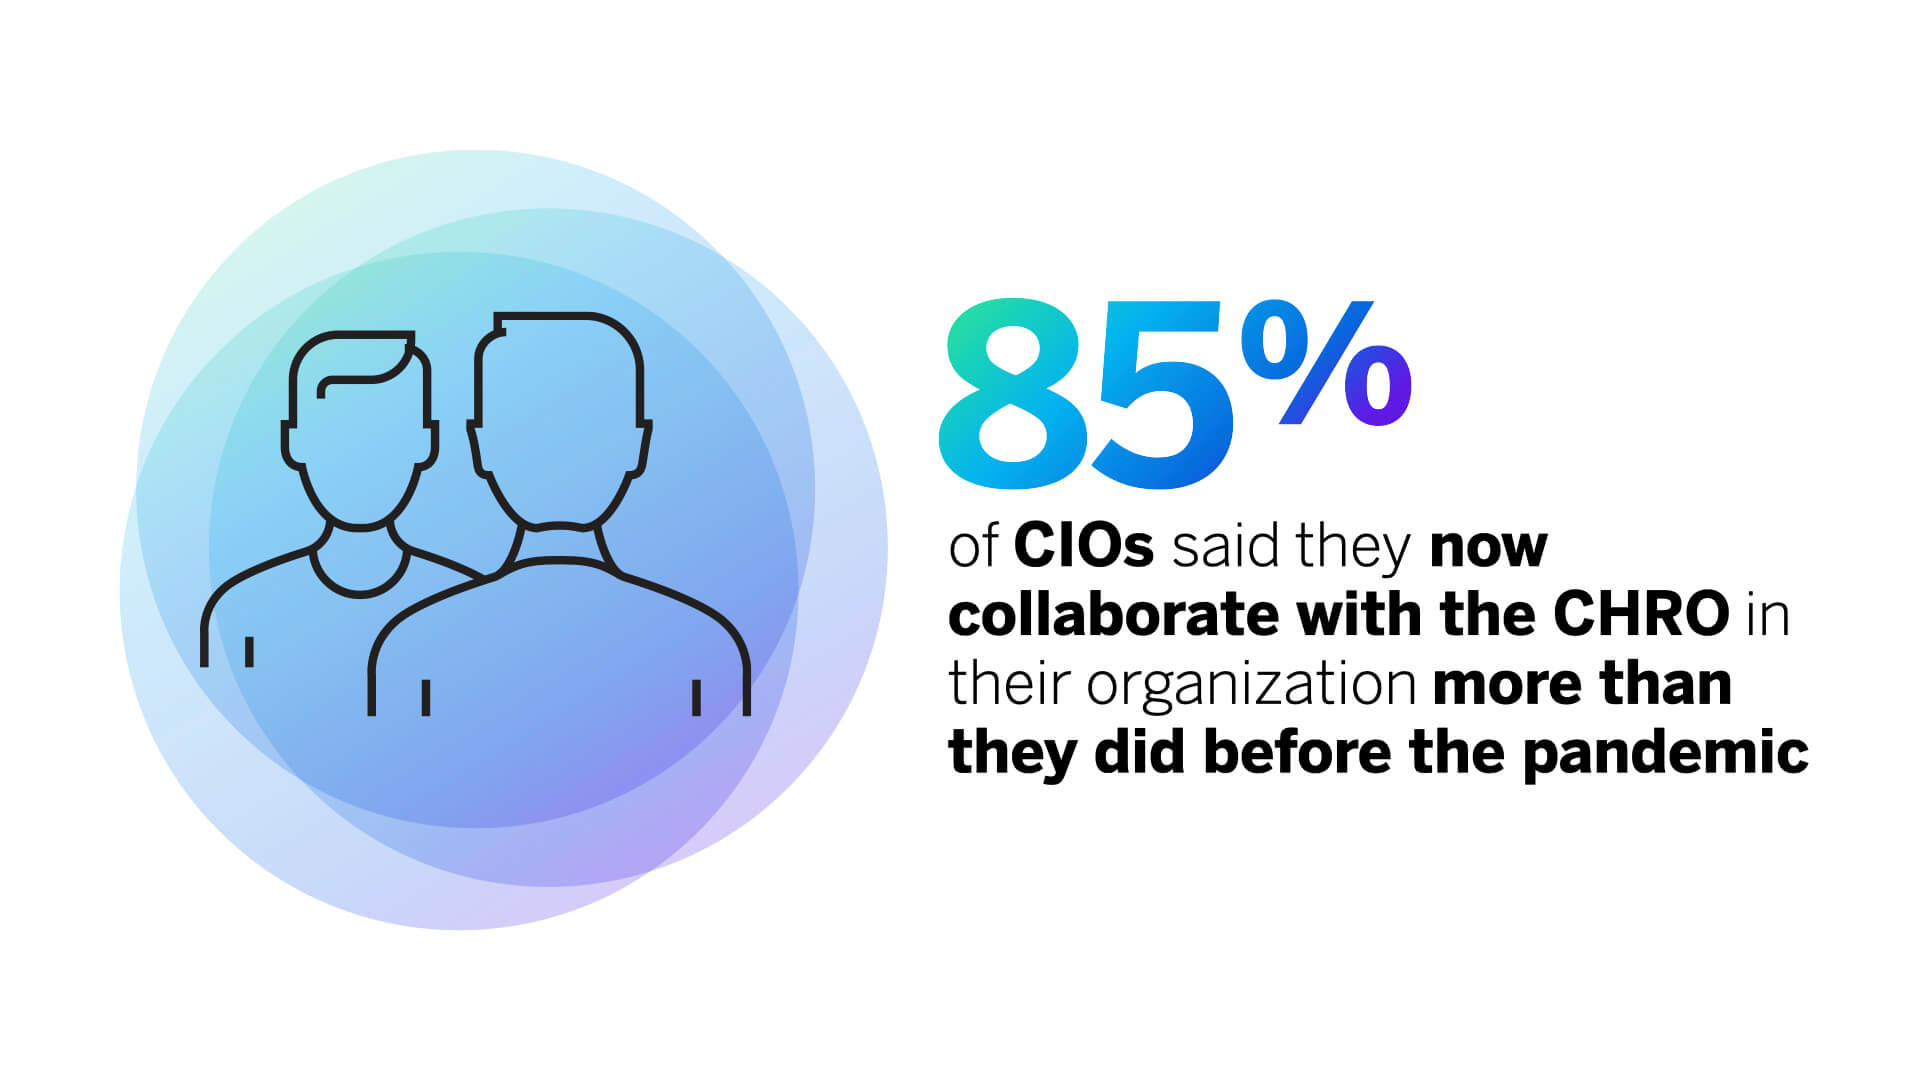 85% of CIOs said they now collaborate with the CHRO